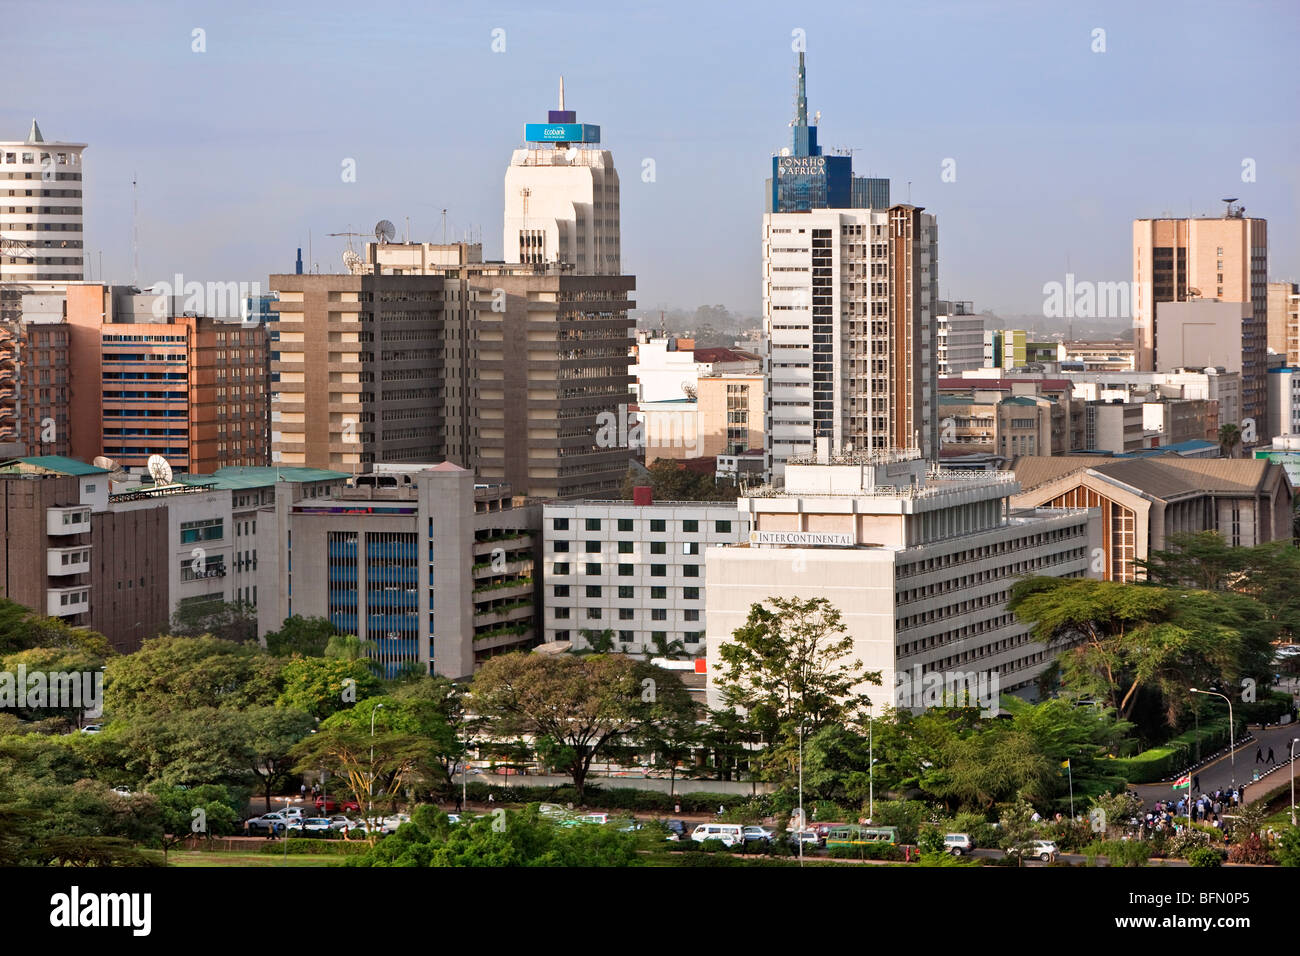 Kenya, Nairobi. Nairobi in late afternoon sunlight. - Stock Image